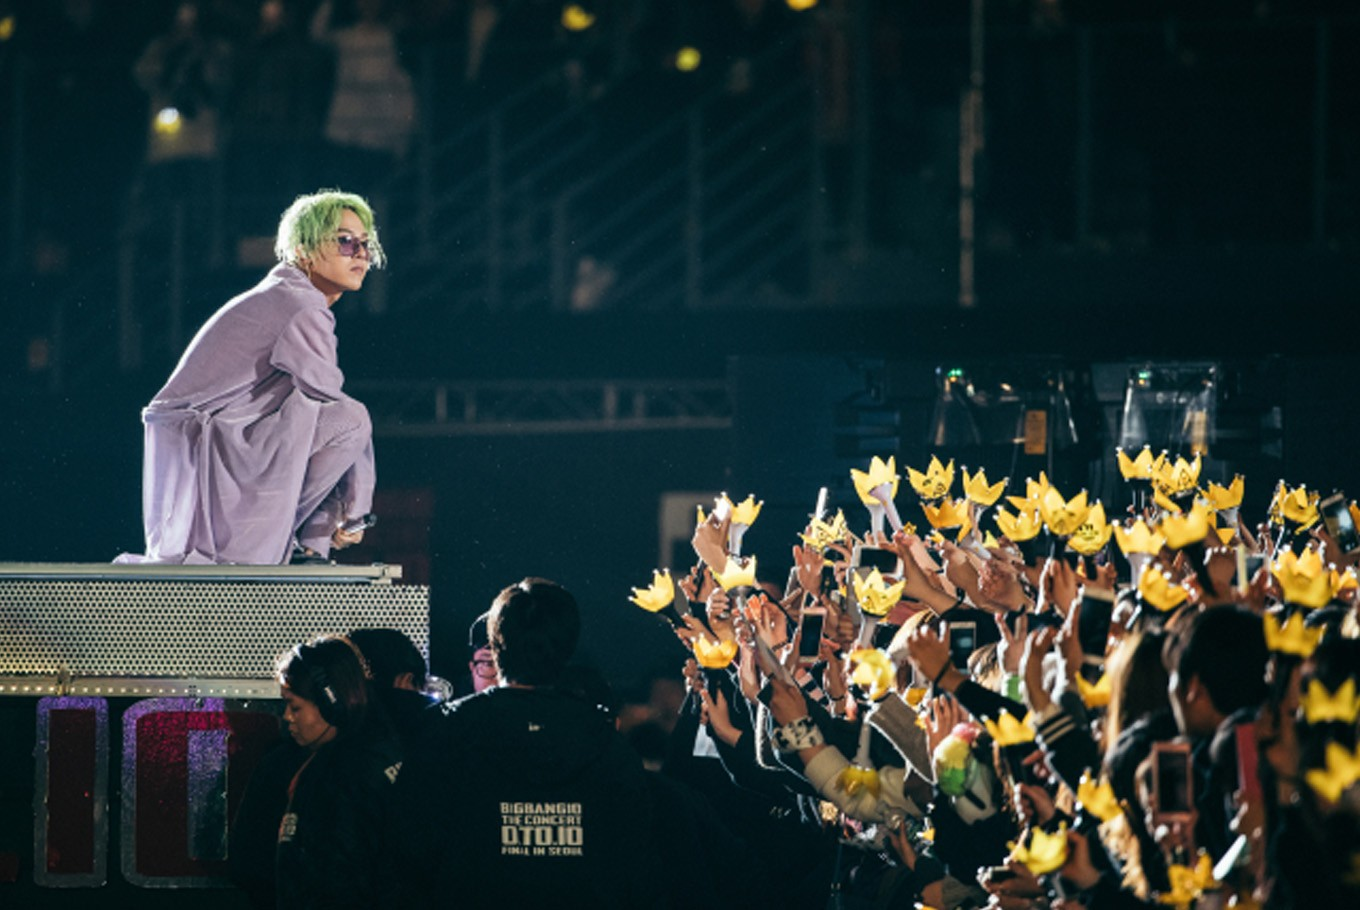 Big Bang goes out with bang in farewell concert - Entertainment